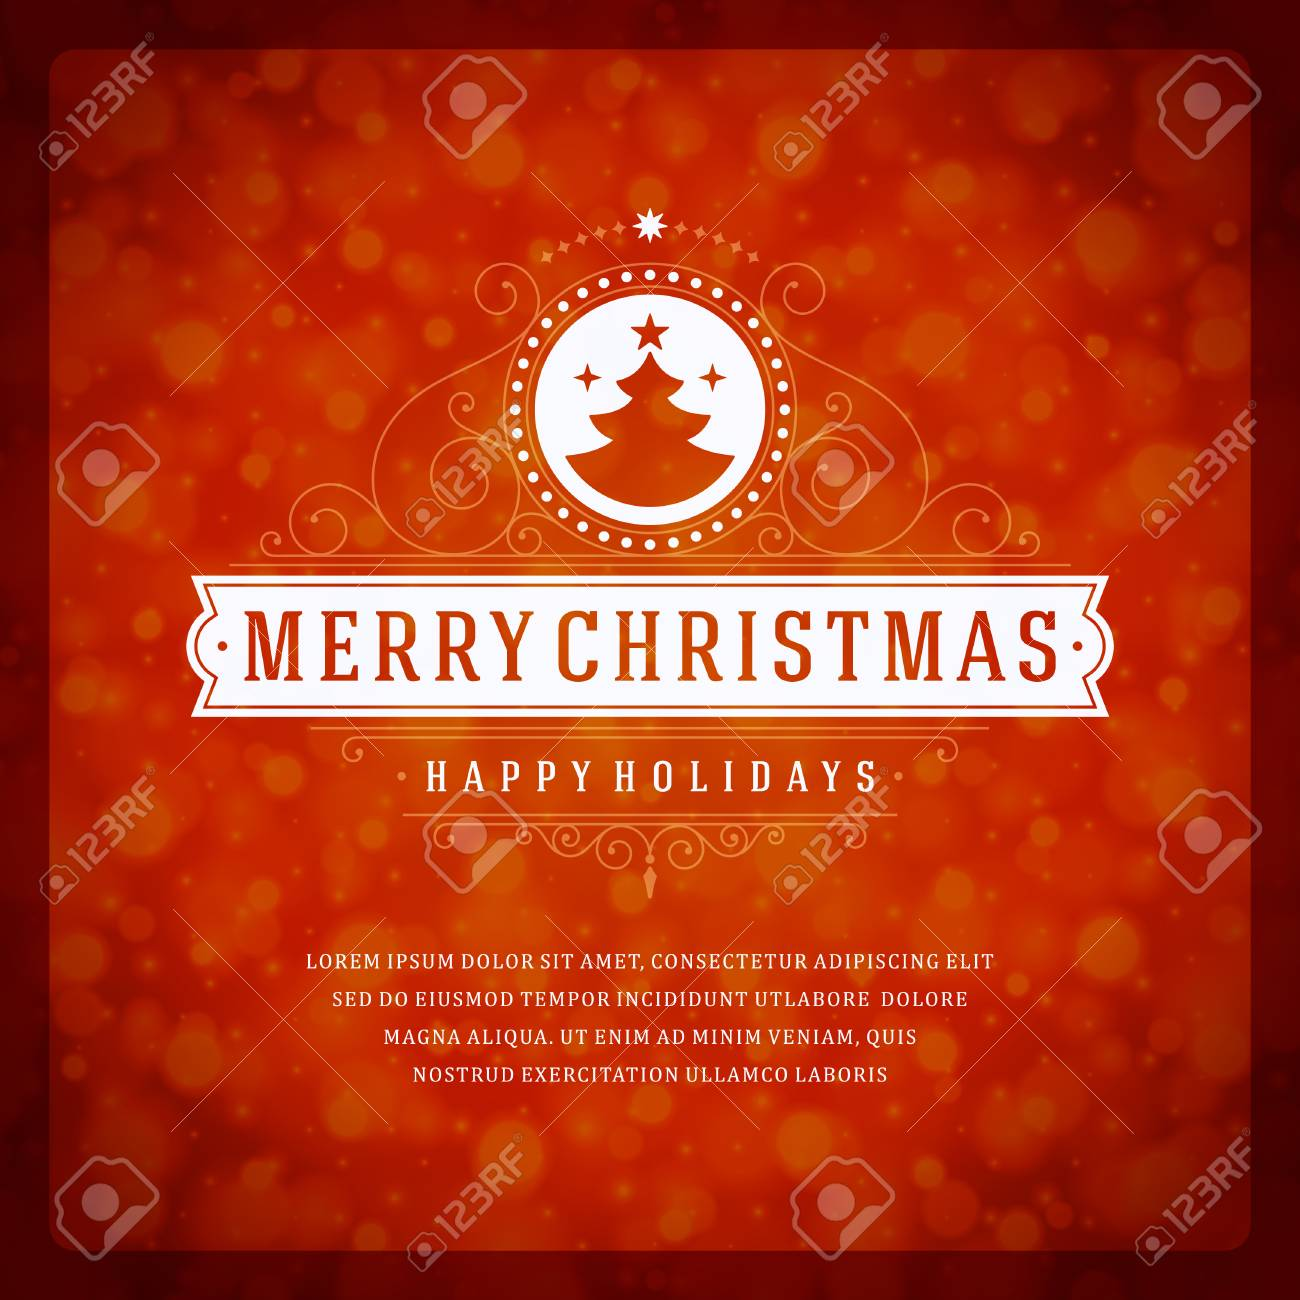 Christmas Greeting Card Light And Snowflakes Vector Background